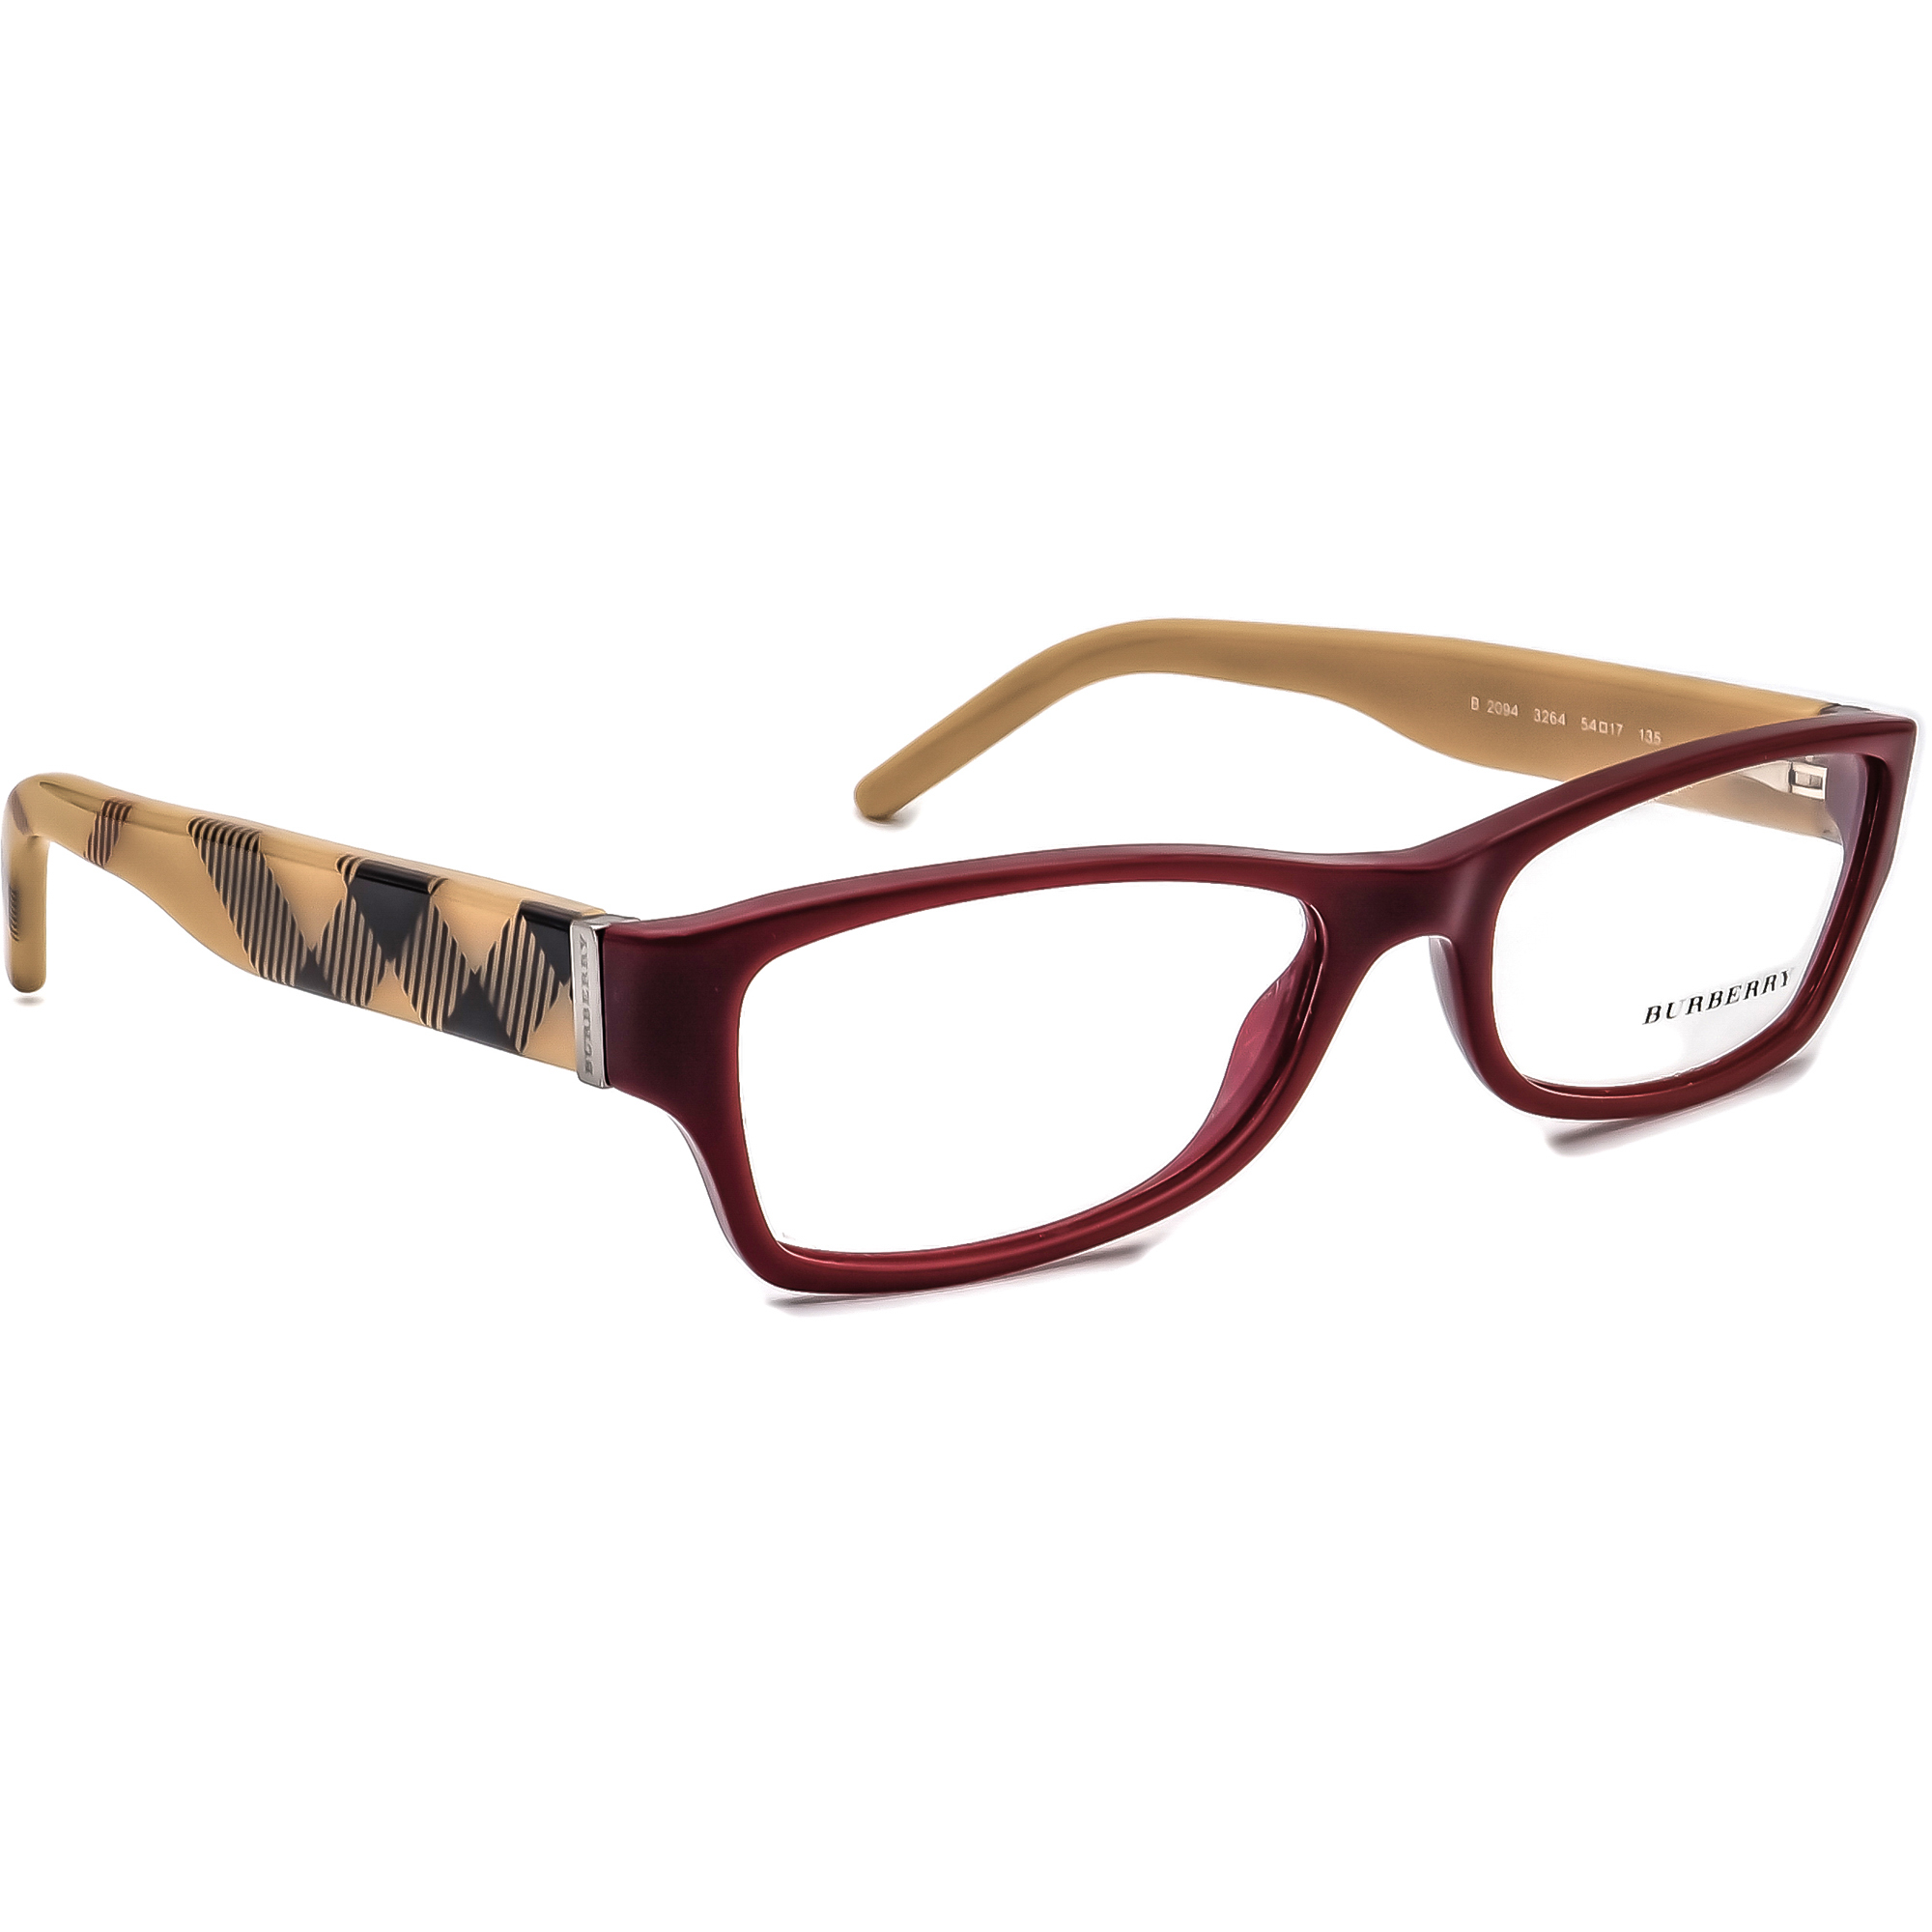 Burberry B 2094 3264 Plaid Eyeglasses